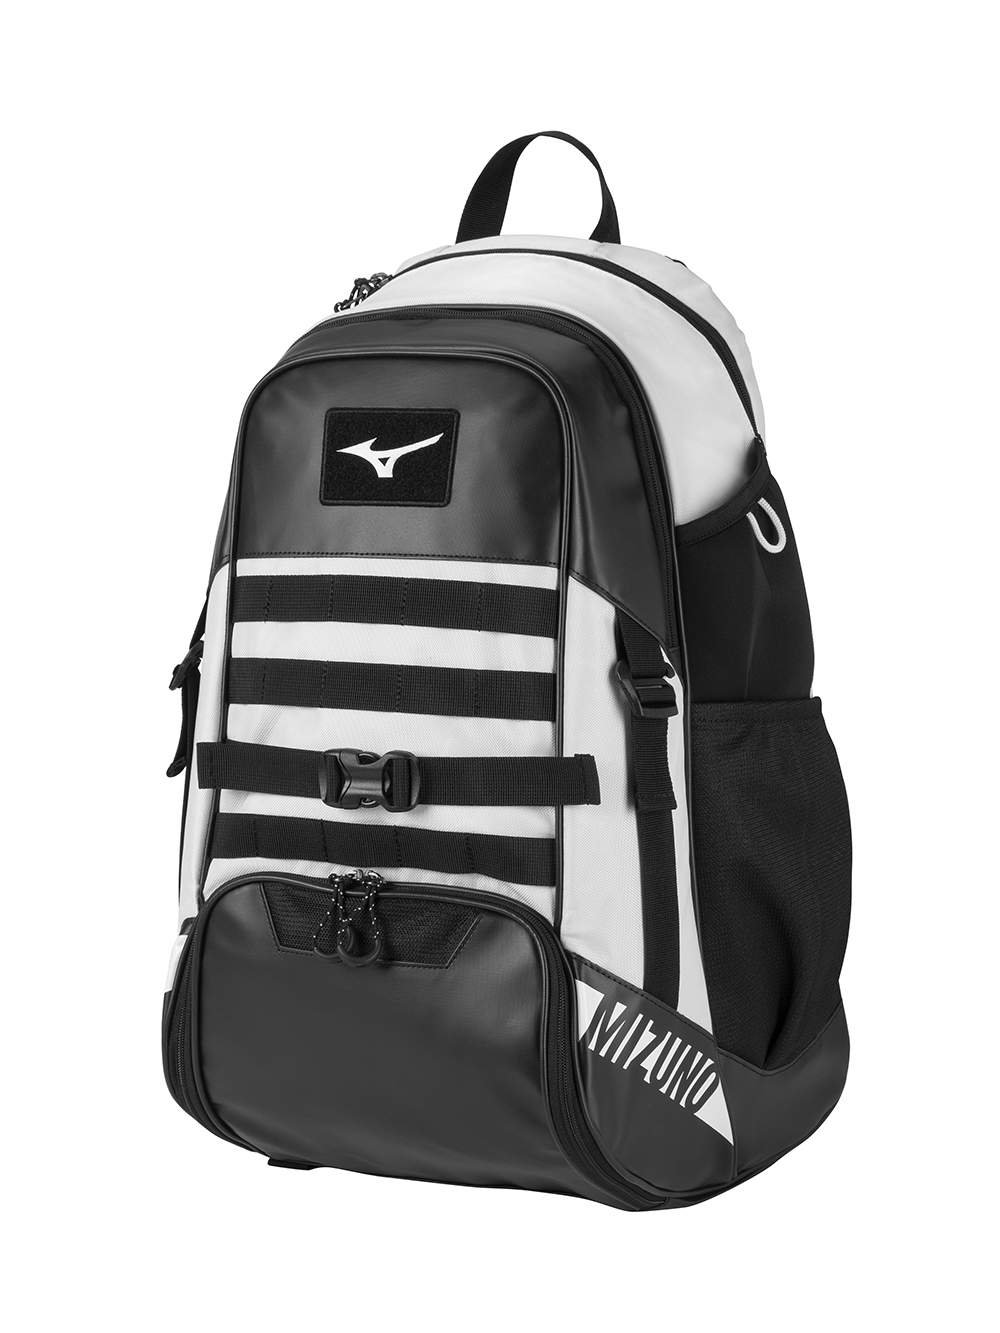 Mizuno Mvp Backpack Midwest Volleyball Warehouse